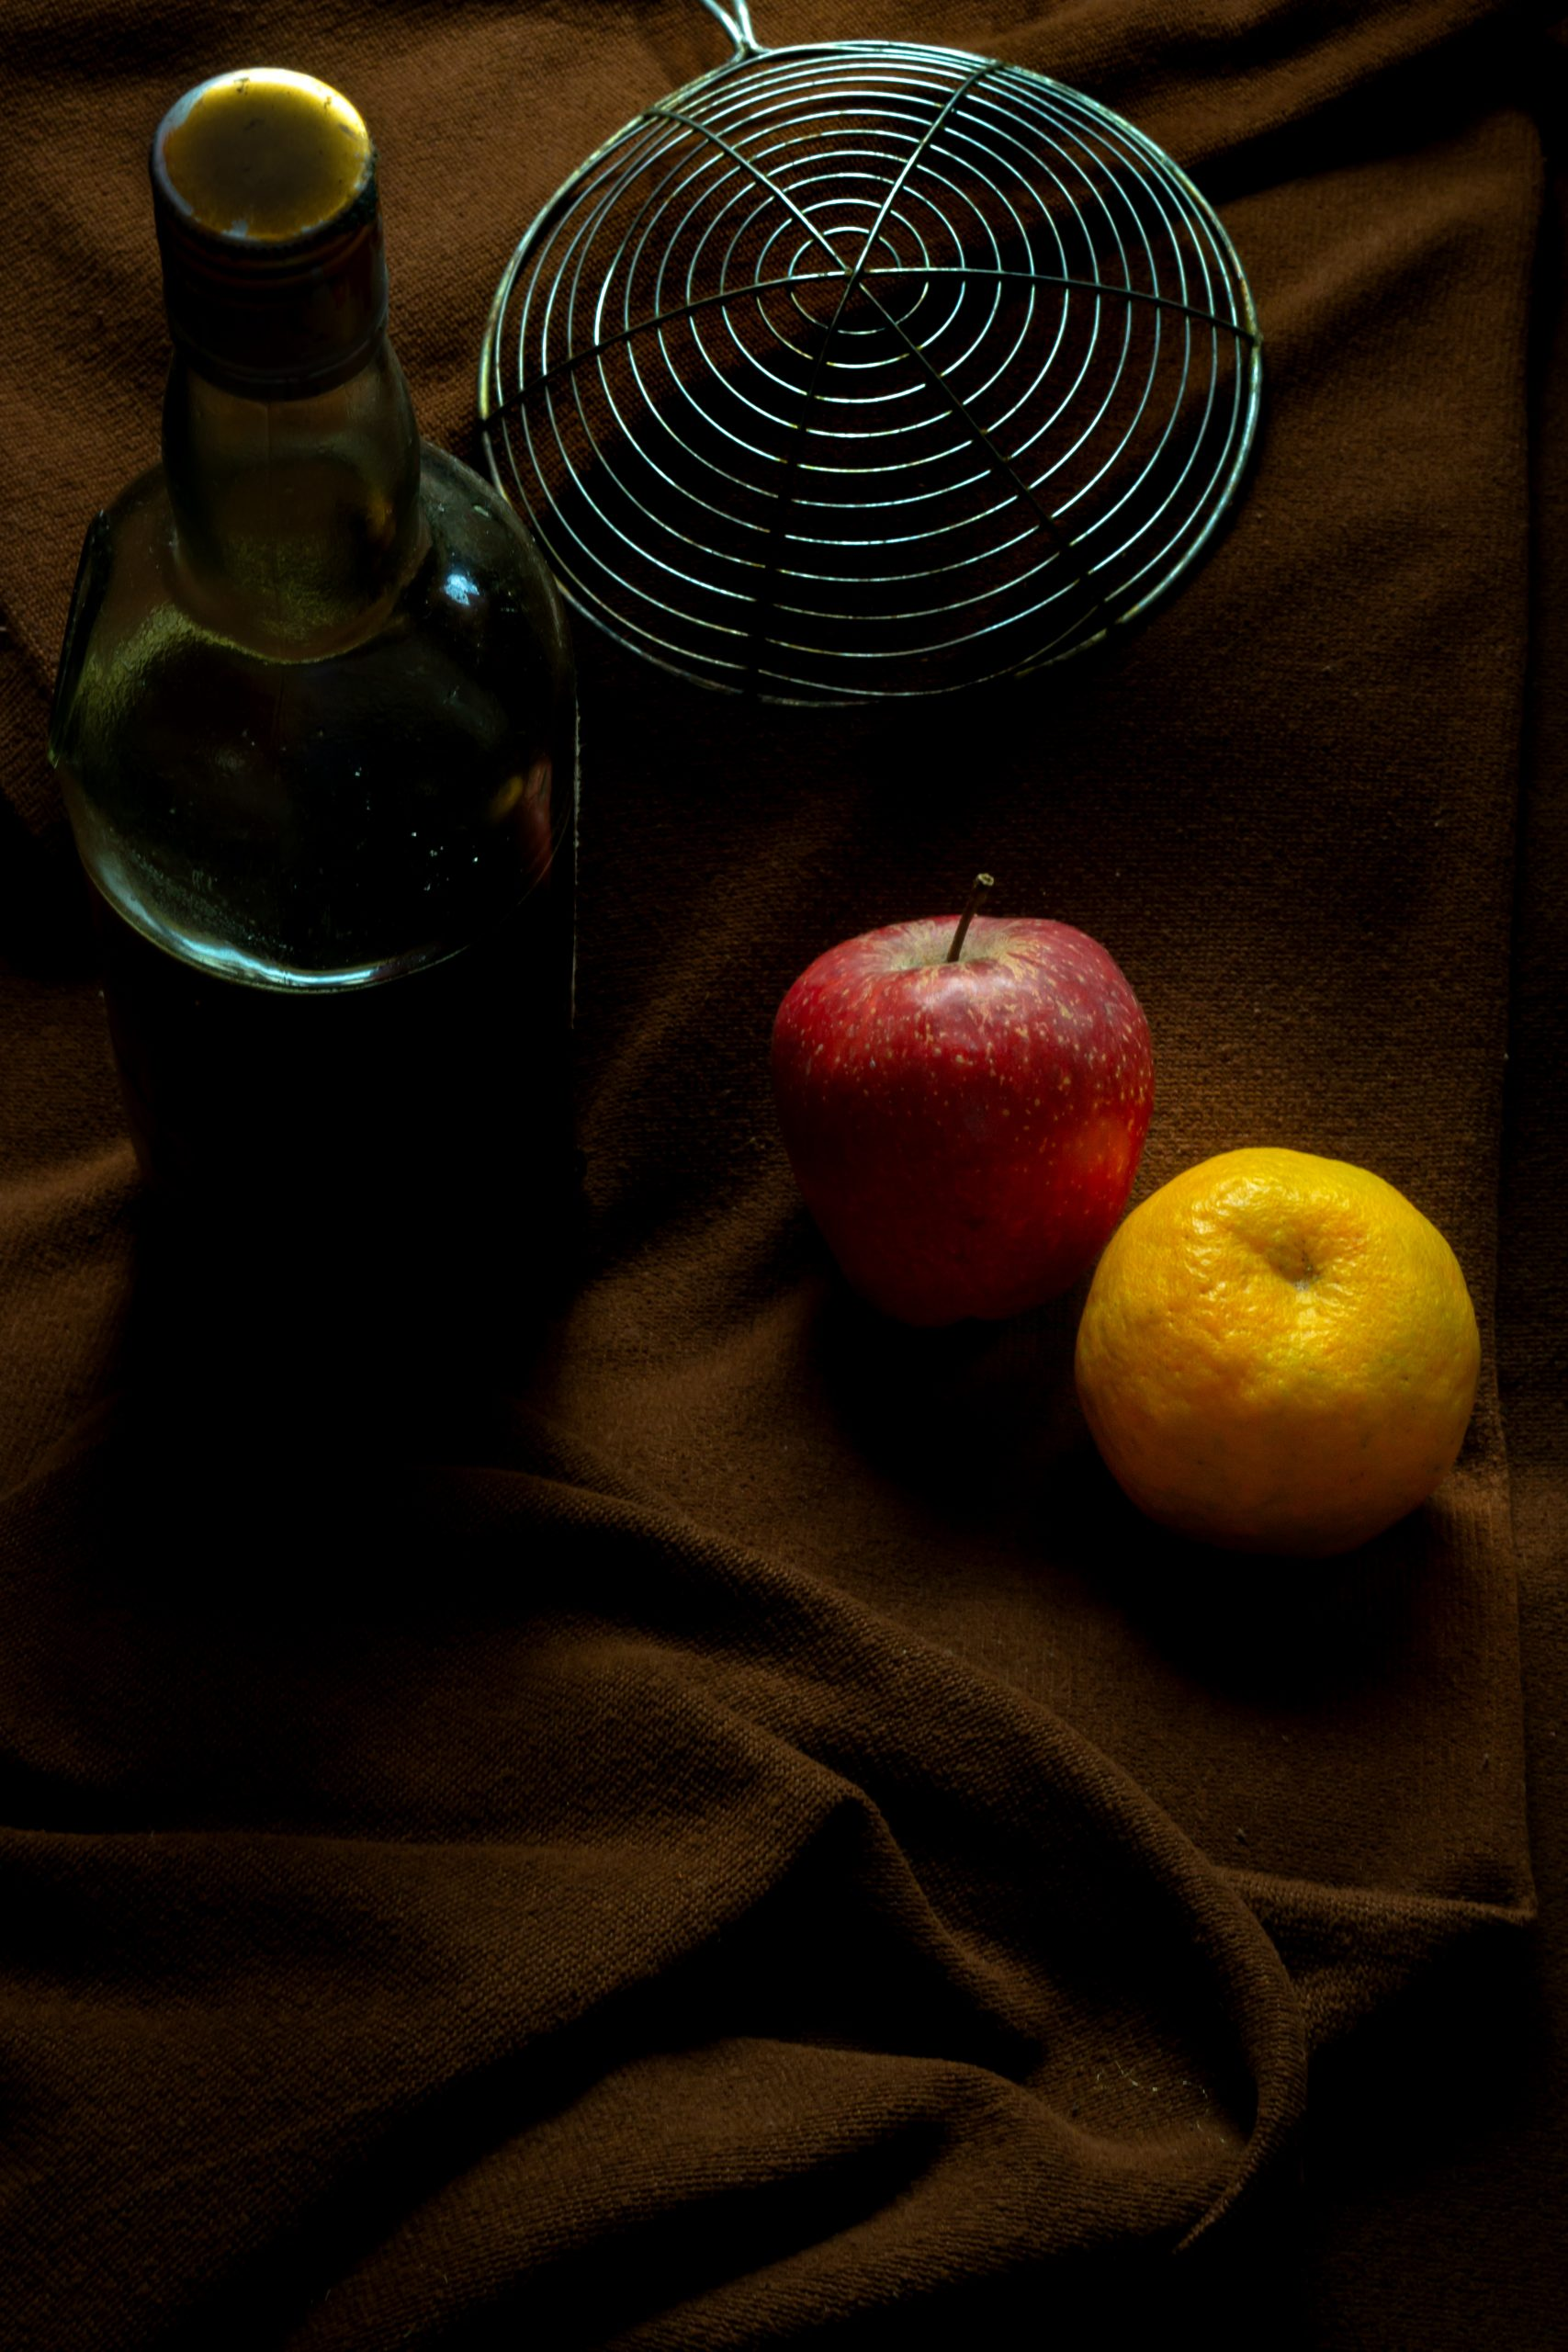 Fruits with bottle on bed